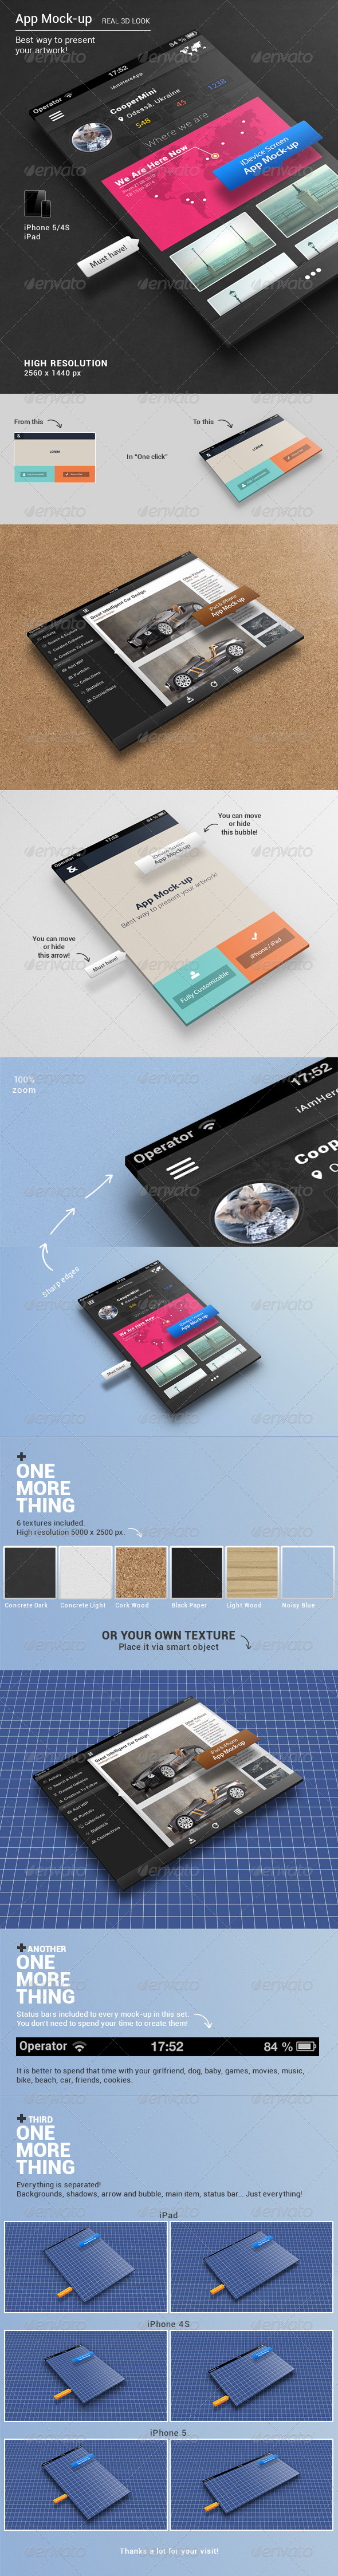 App Mock-up - Mobile Displays